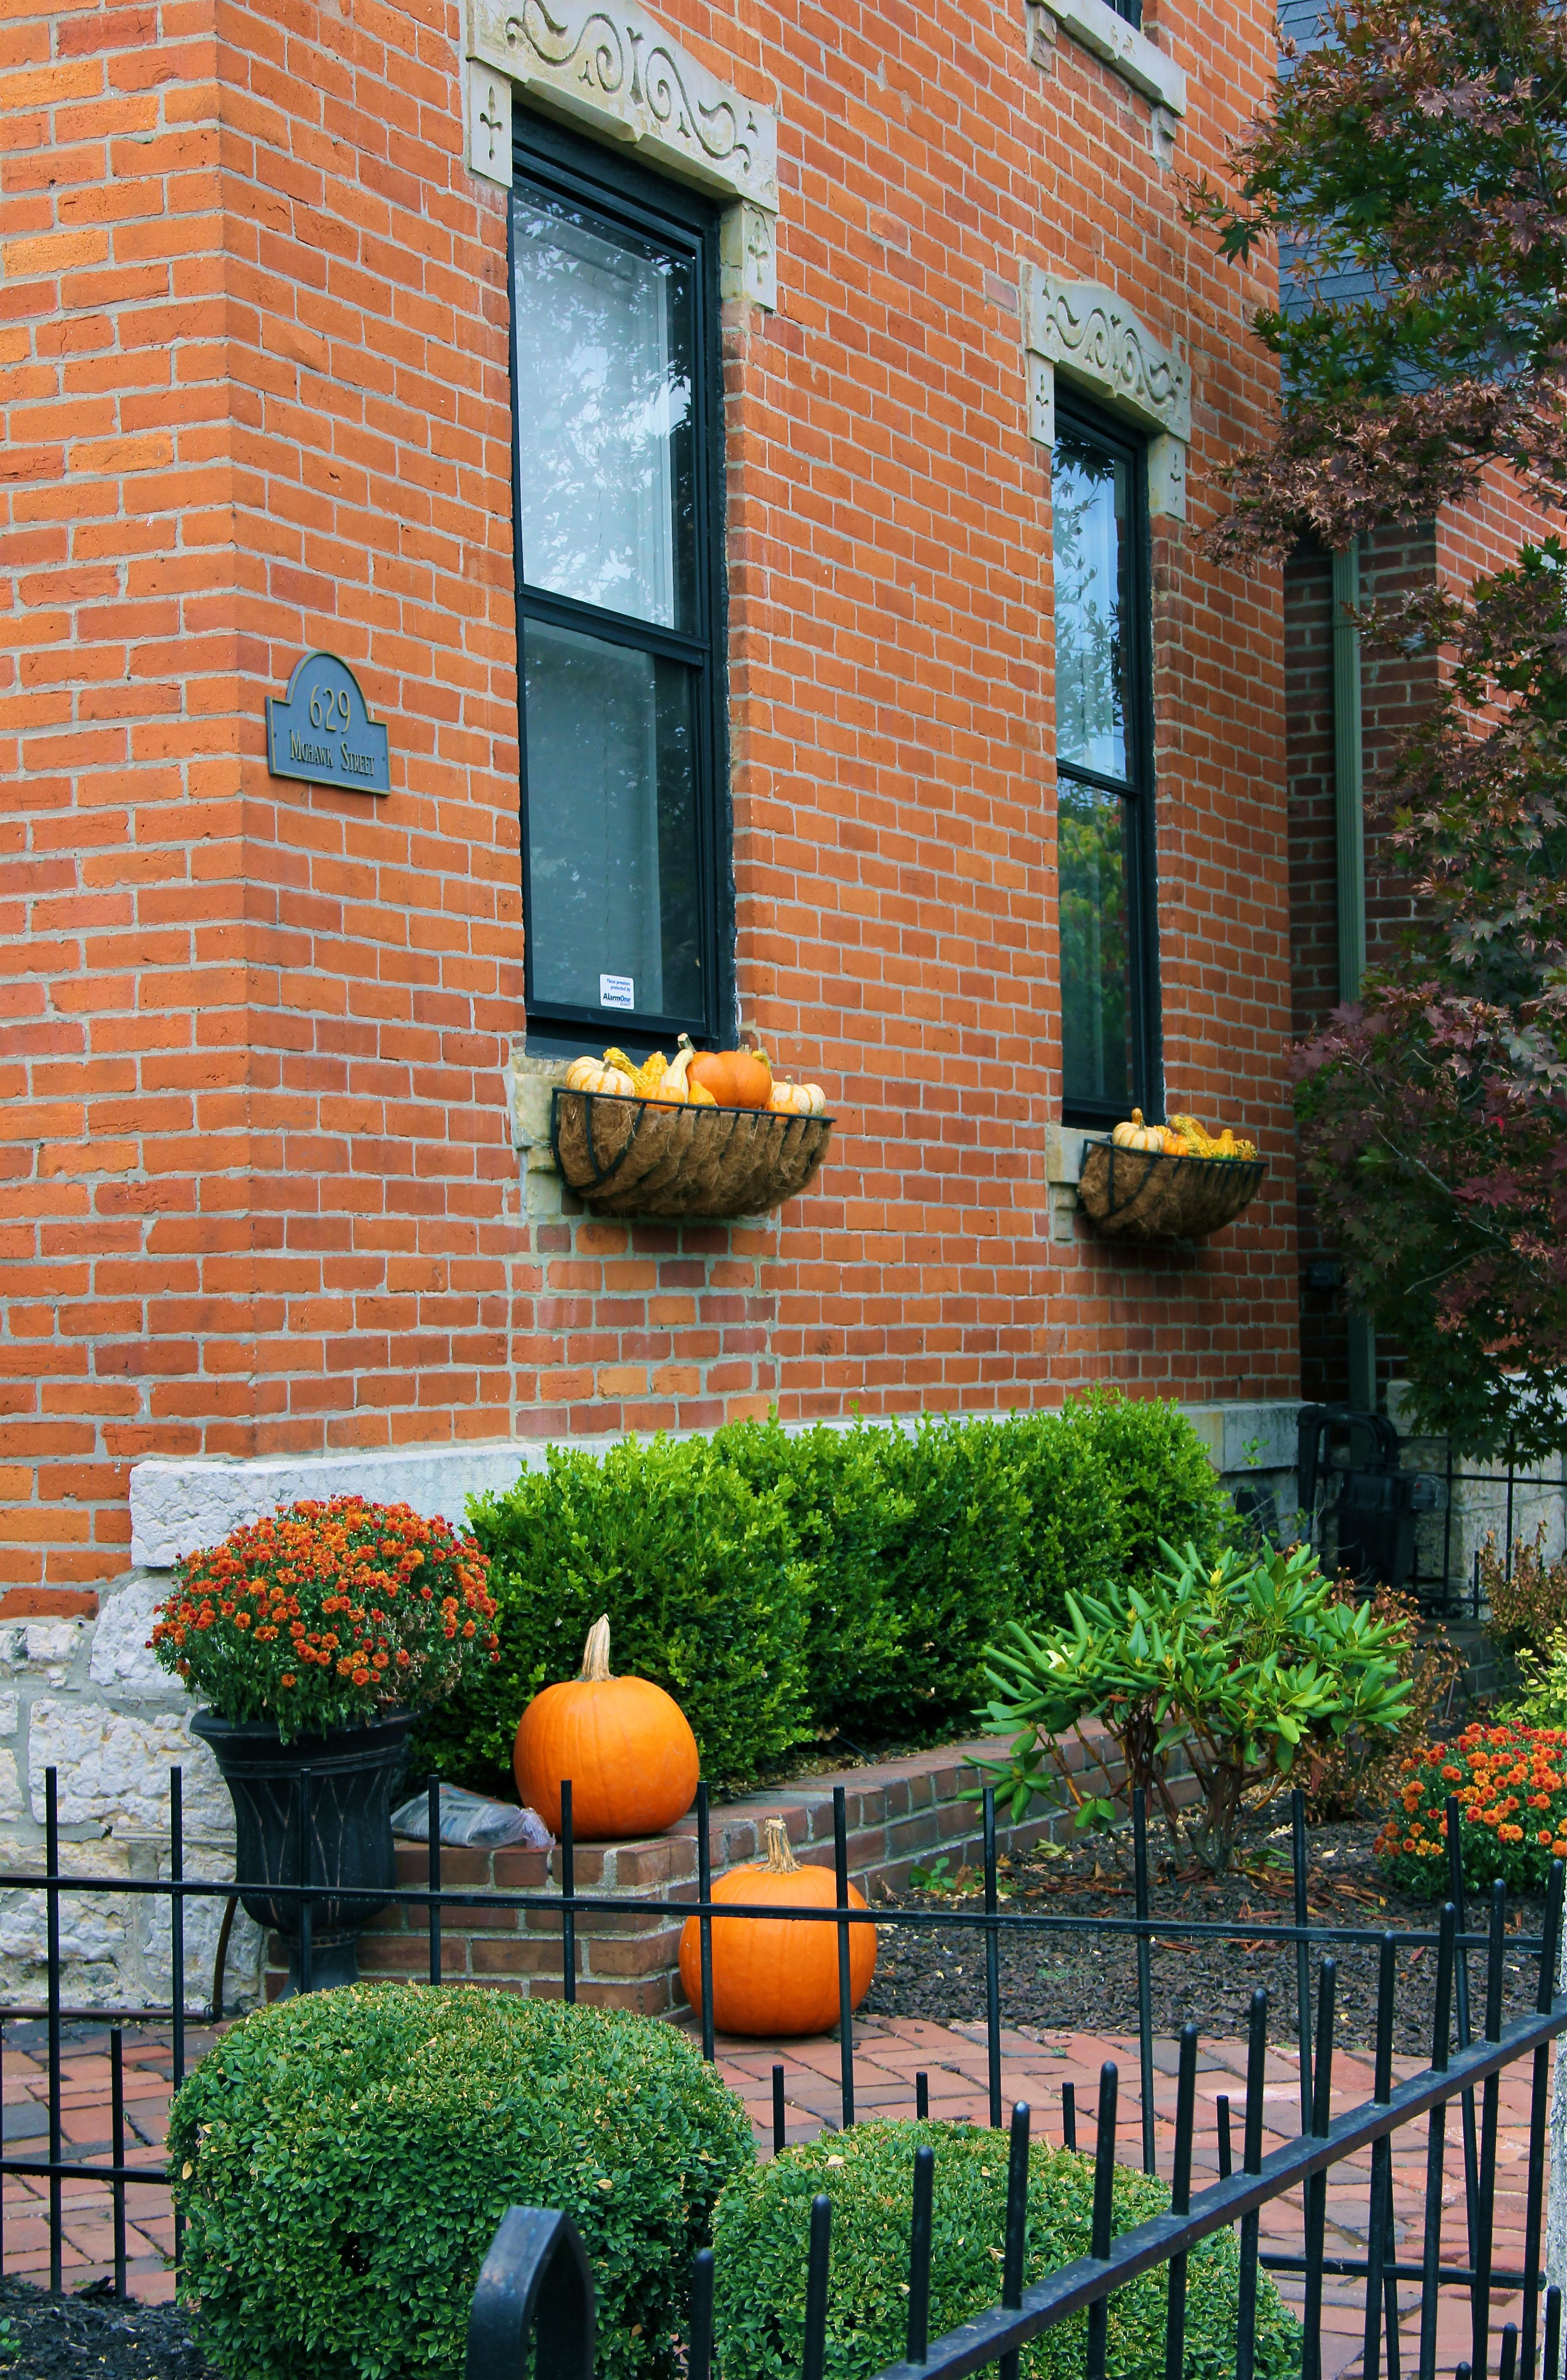 german_village_fall_decorations_columbus_ohio